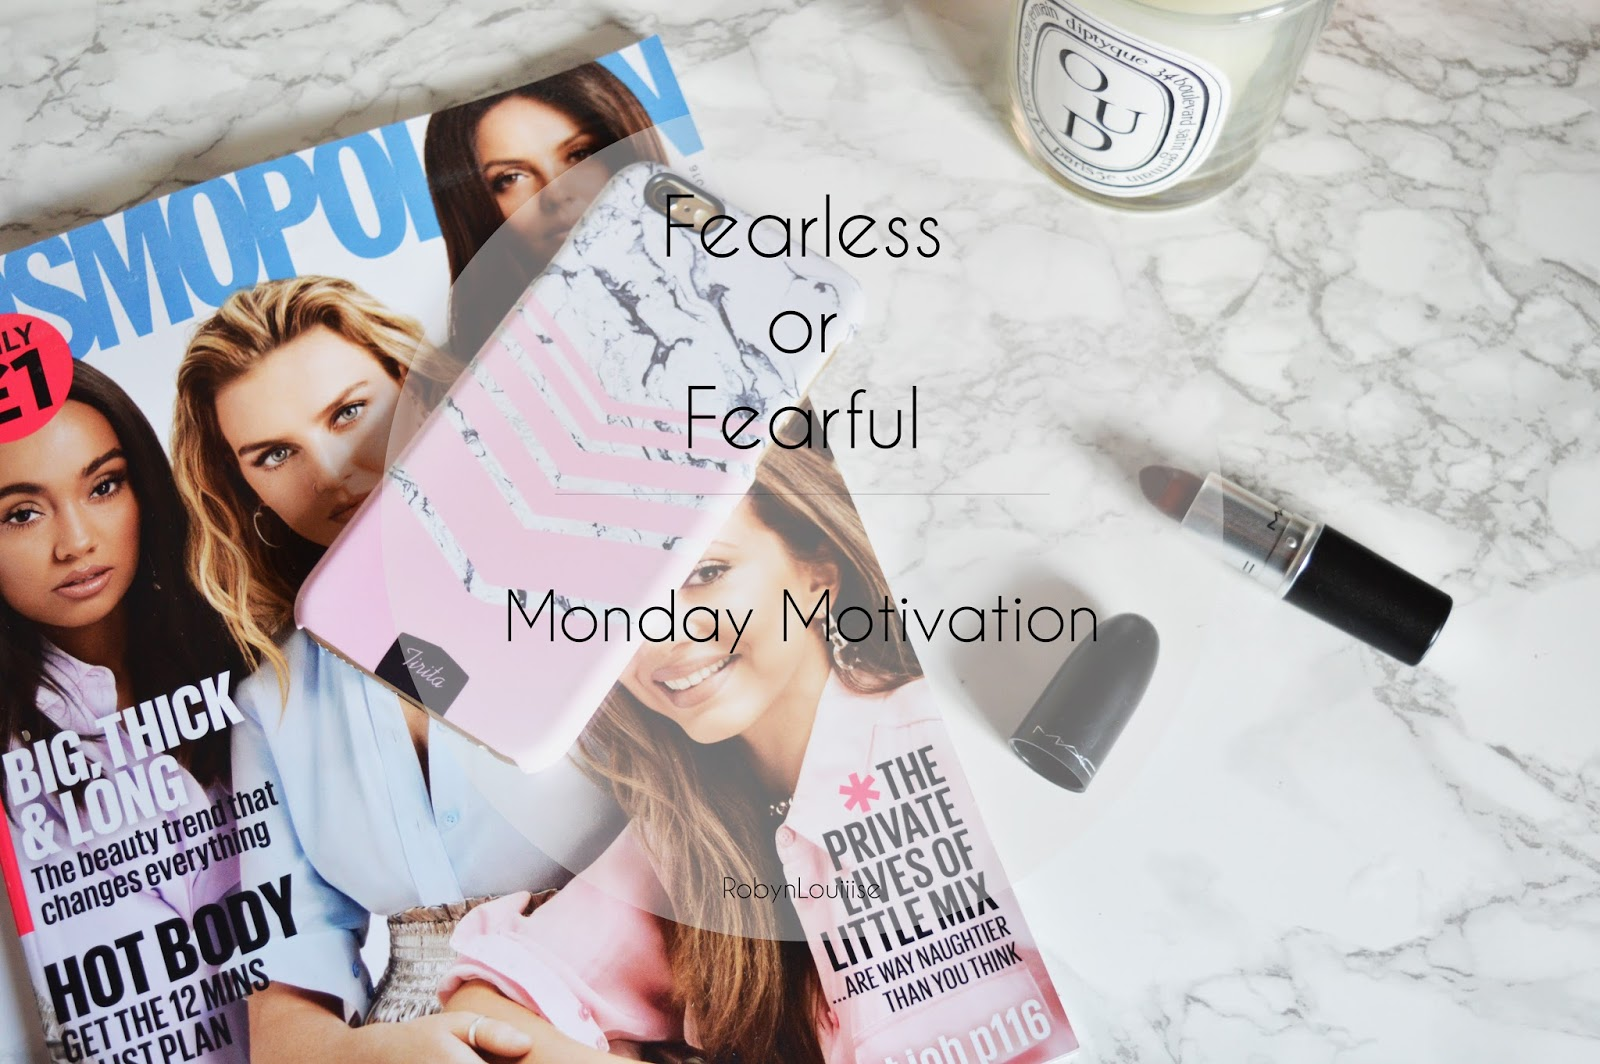 Fearless, Fearful, Monday Motivation, Inspire